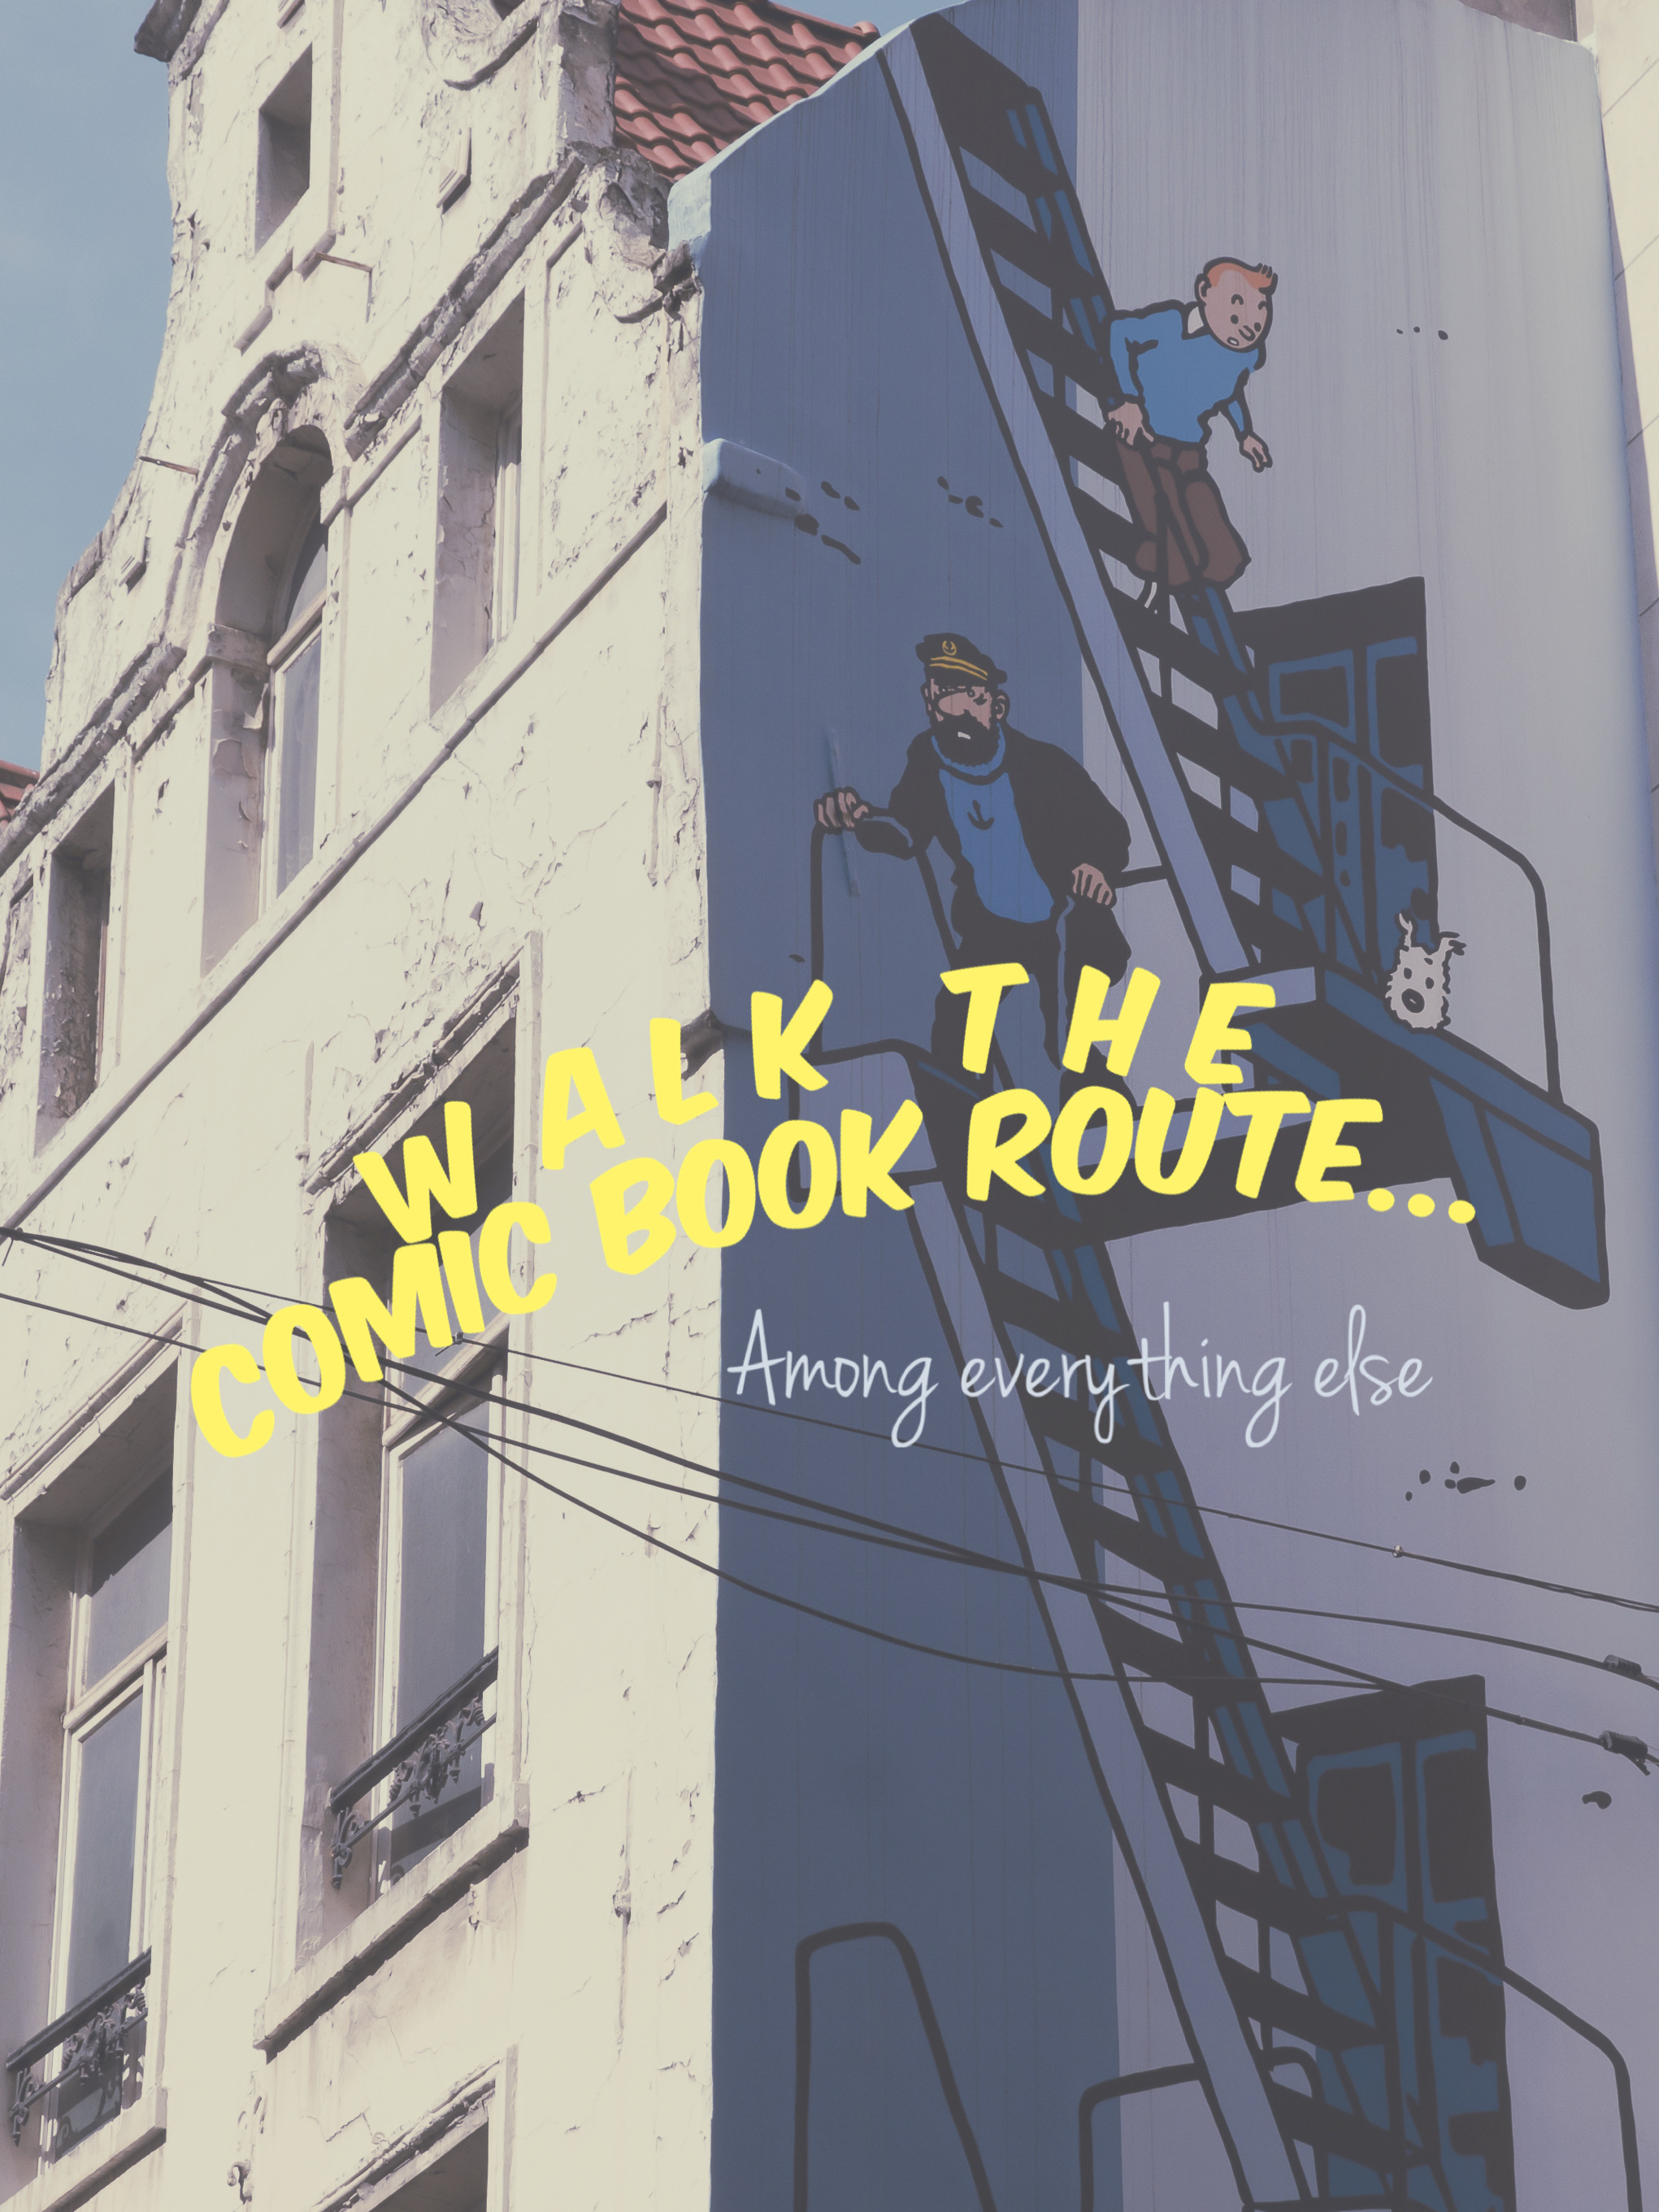 Walk the Brussels Comic Book Route, among the City Highlights